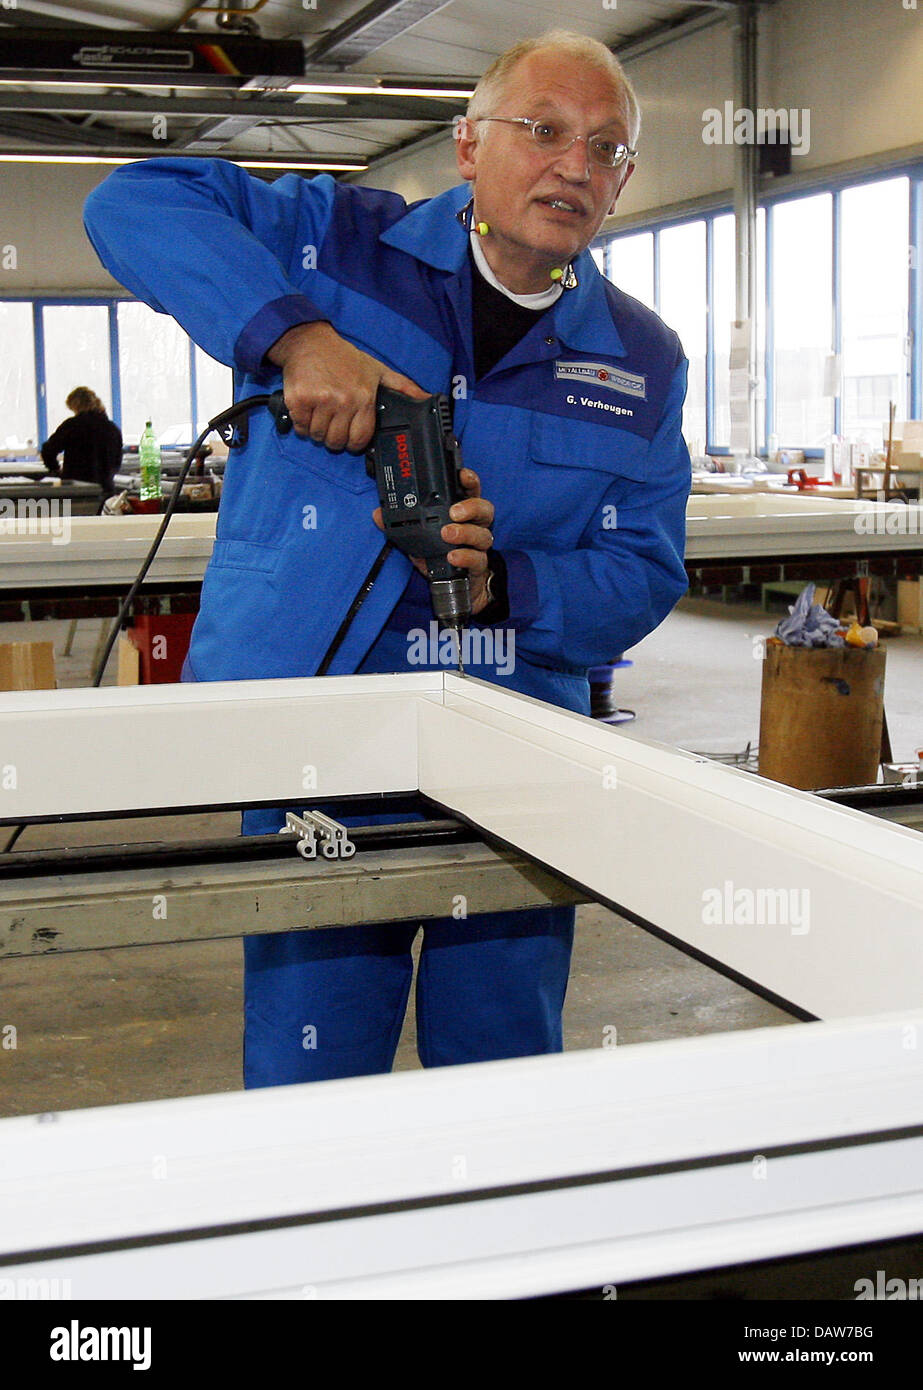 The Euopean Commissioner for Enterprise and Industry Guenter Verheugen drills holes into a window frame at the Metallbau - Stock Image